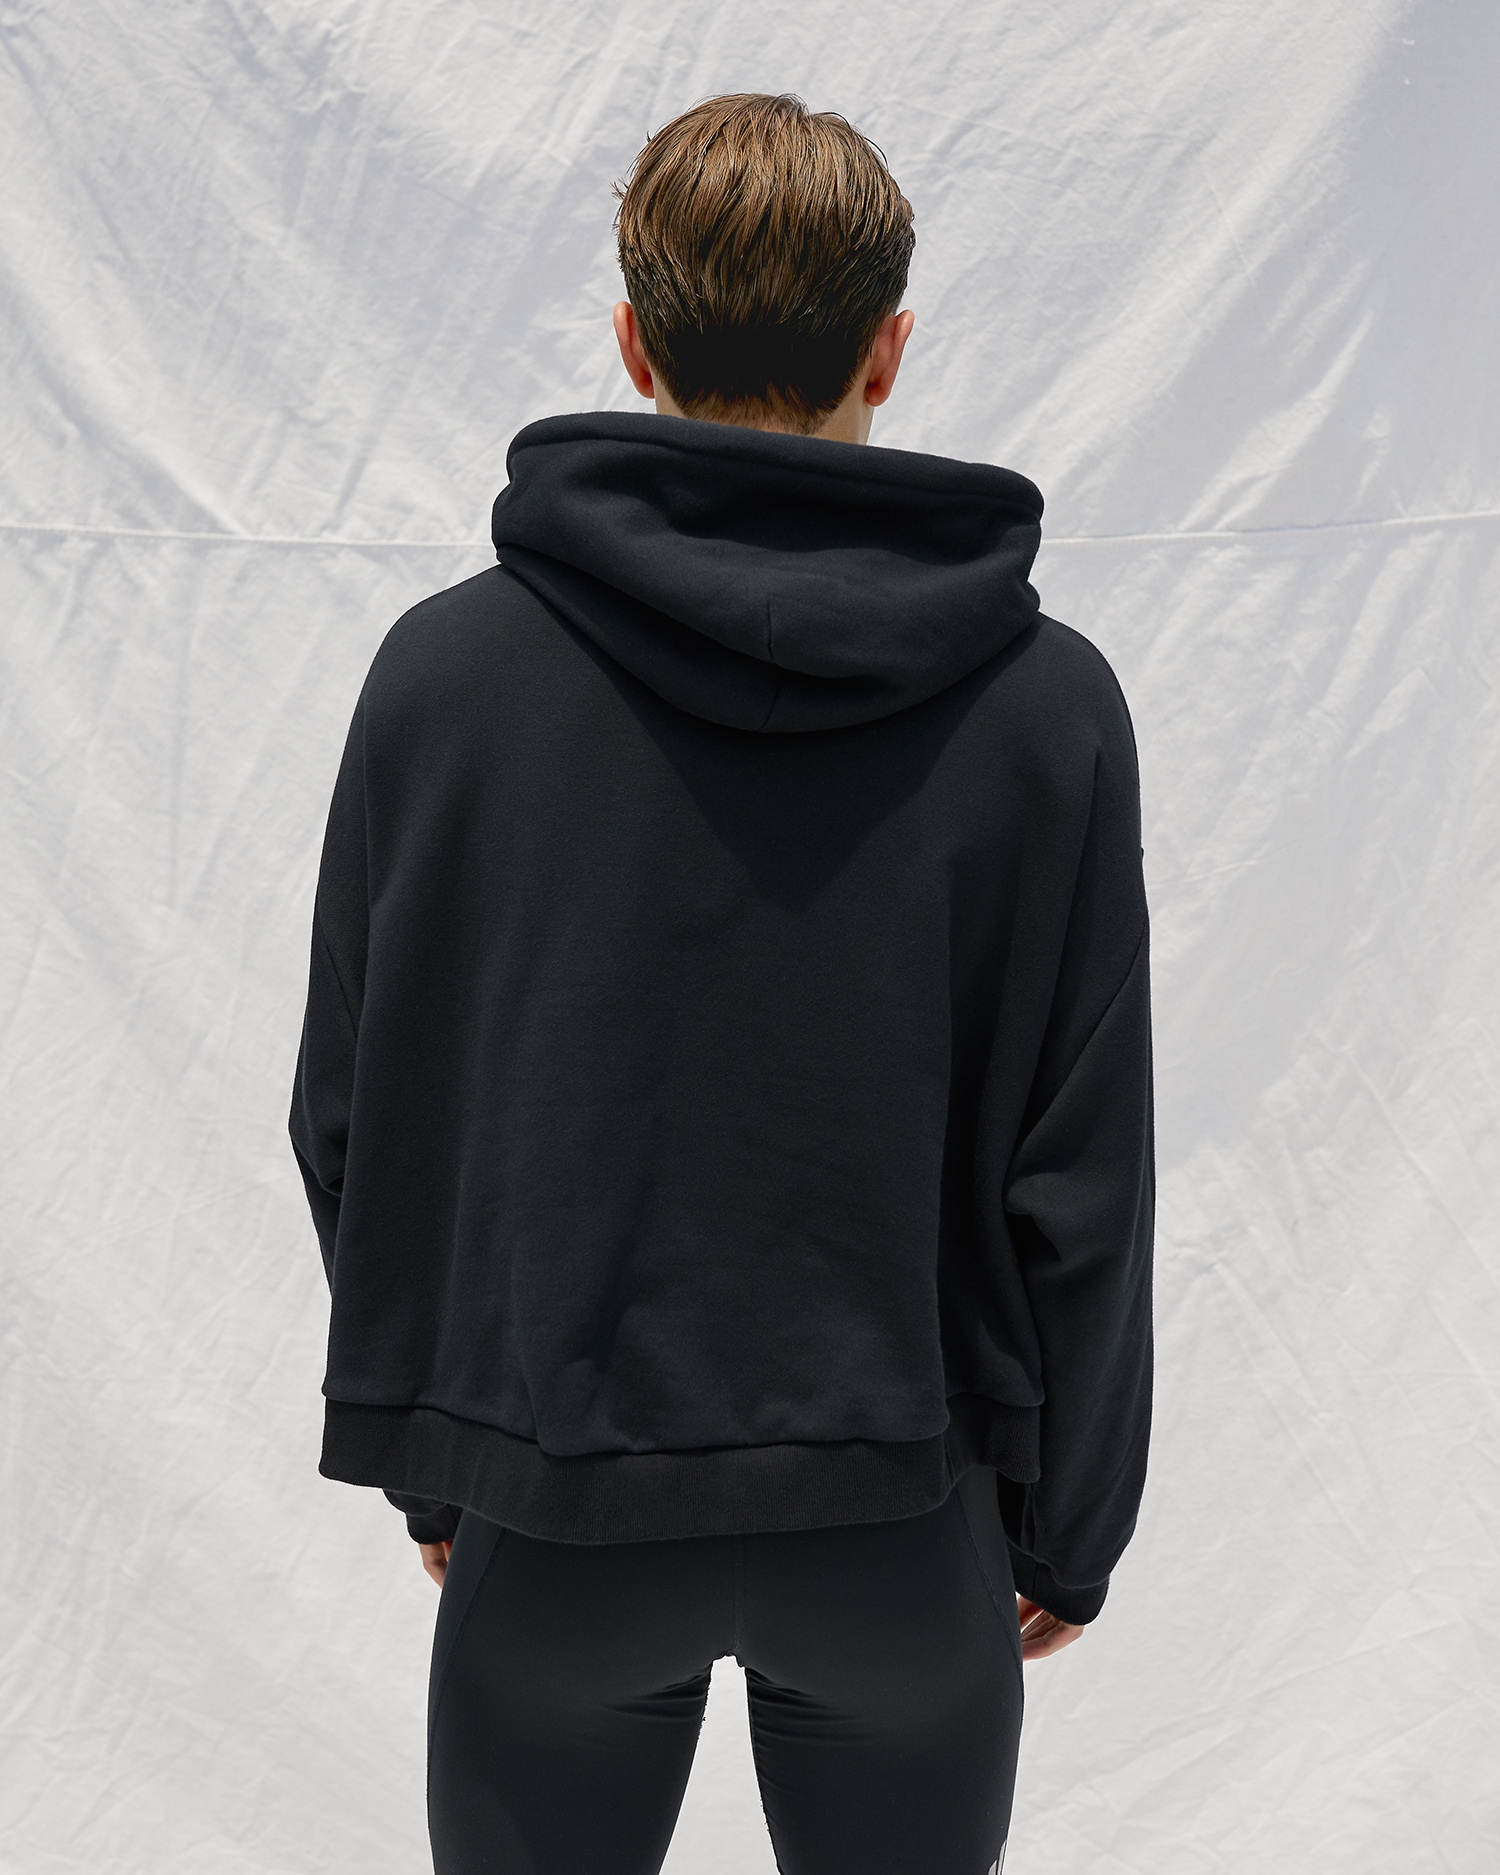 Gender Neutral Hoodie by One DNA in Heavy Weight French Terry